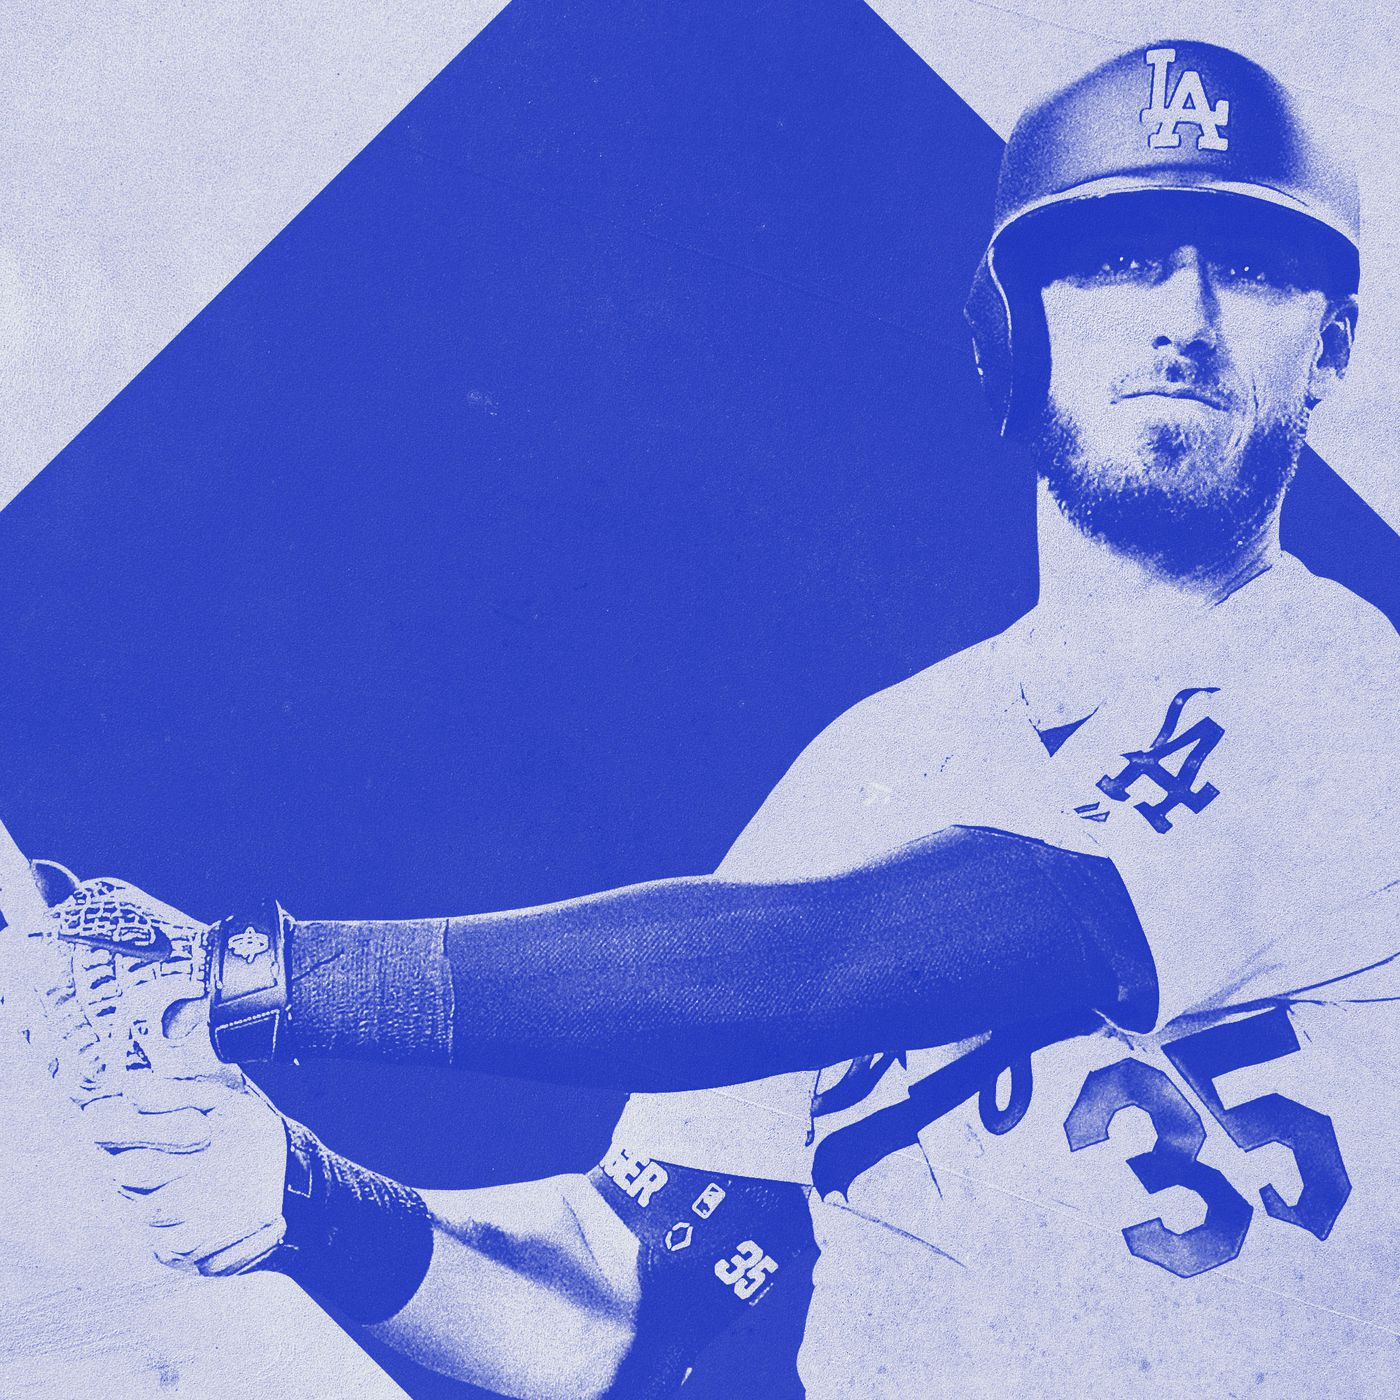 a341a51b6e The Dodgers' Cody Bellinger Has Been the Best Baseball Player in Los  Angeles This Season - The Ringer